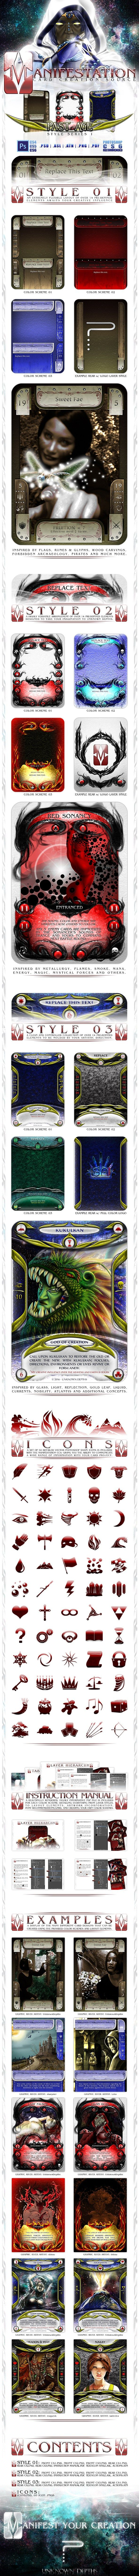 Trading Card Game Template Free Download Card Games Cards Pokemon Card Template